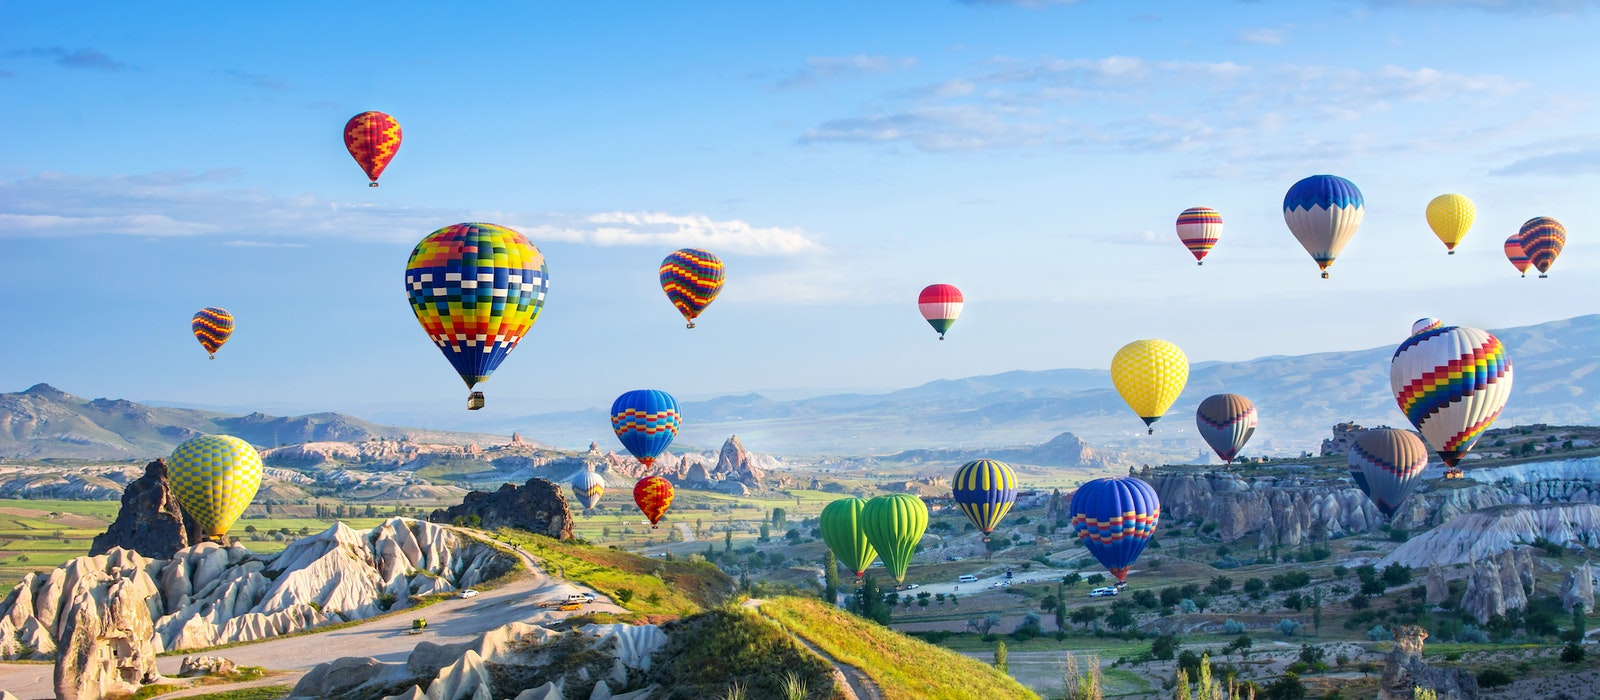 Cappadocia, Turkey, is famous for its unique rock formations and incredible hot air ballooning opportunities.